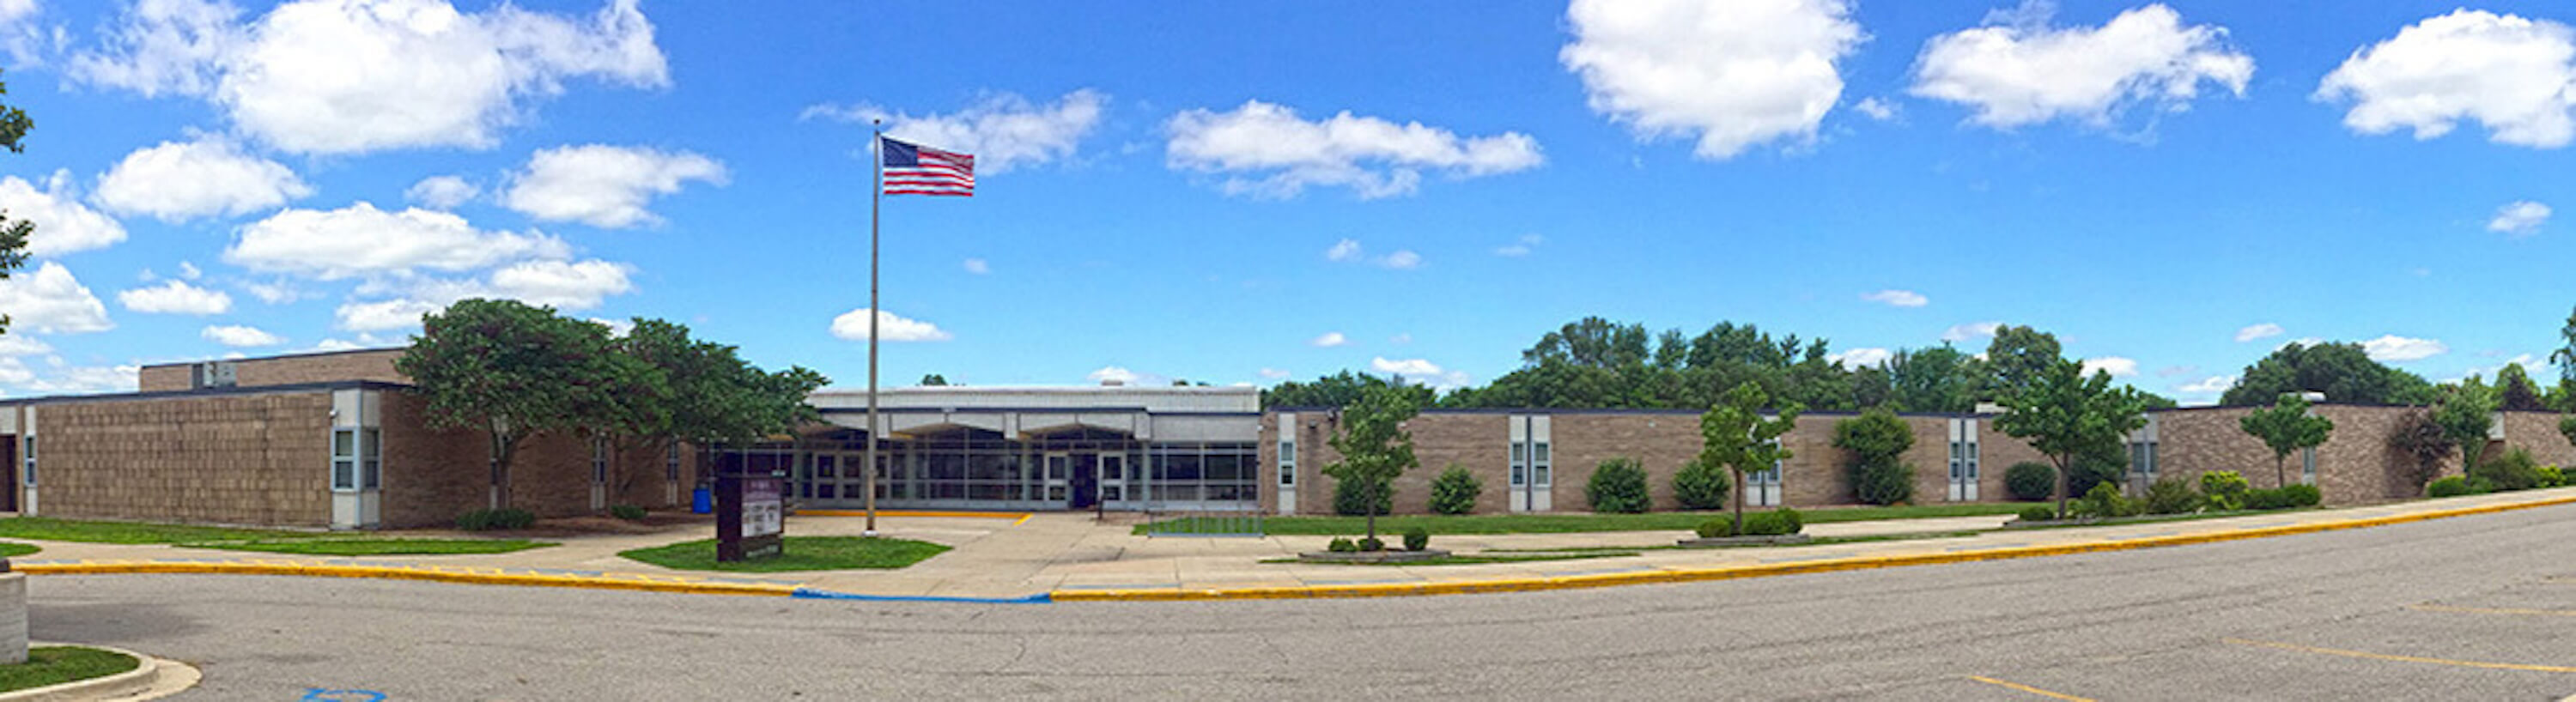 Photo of Wyoming Intermediate School